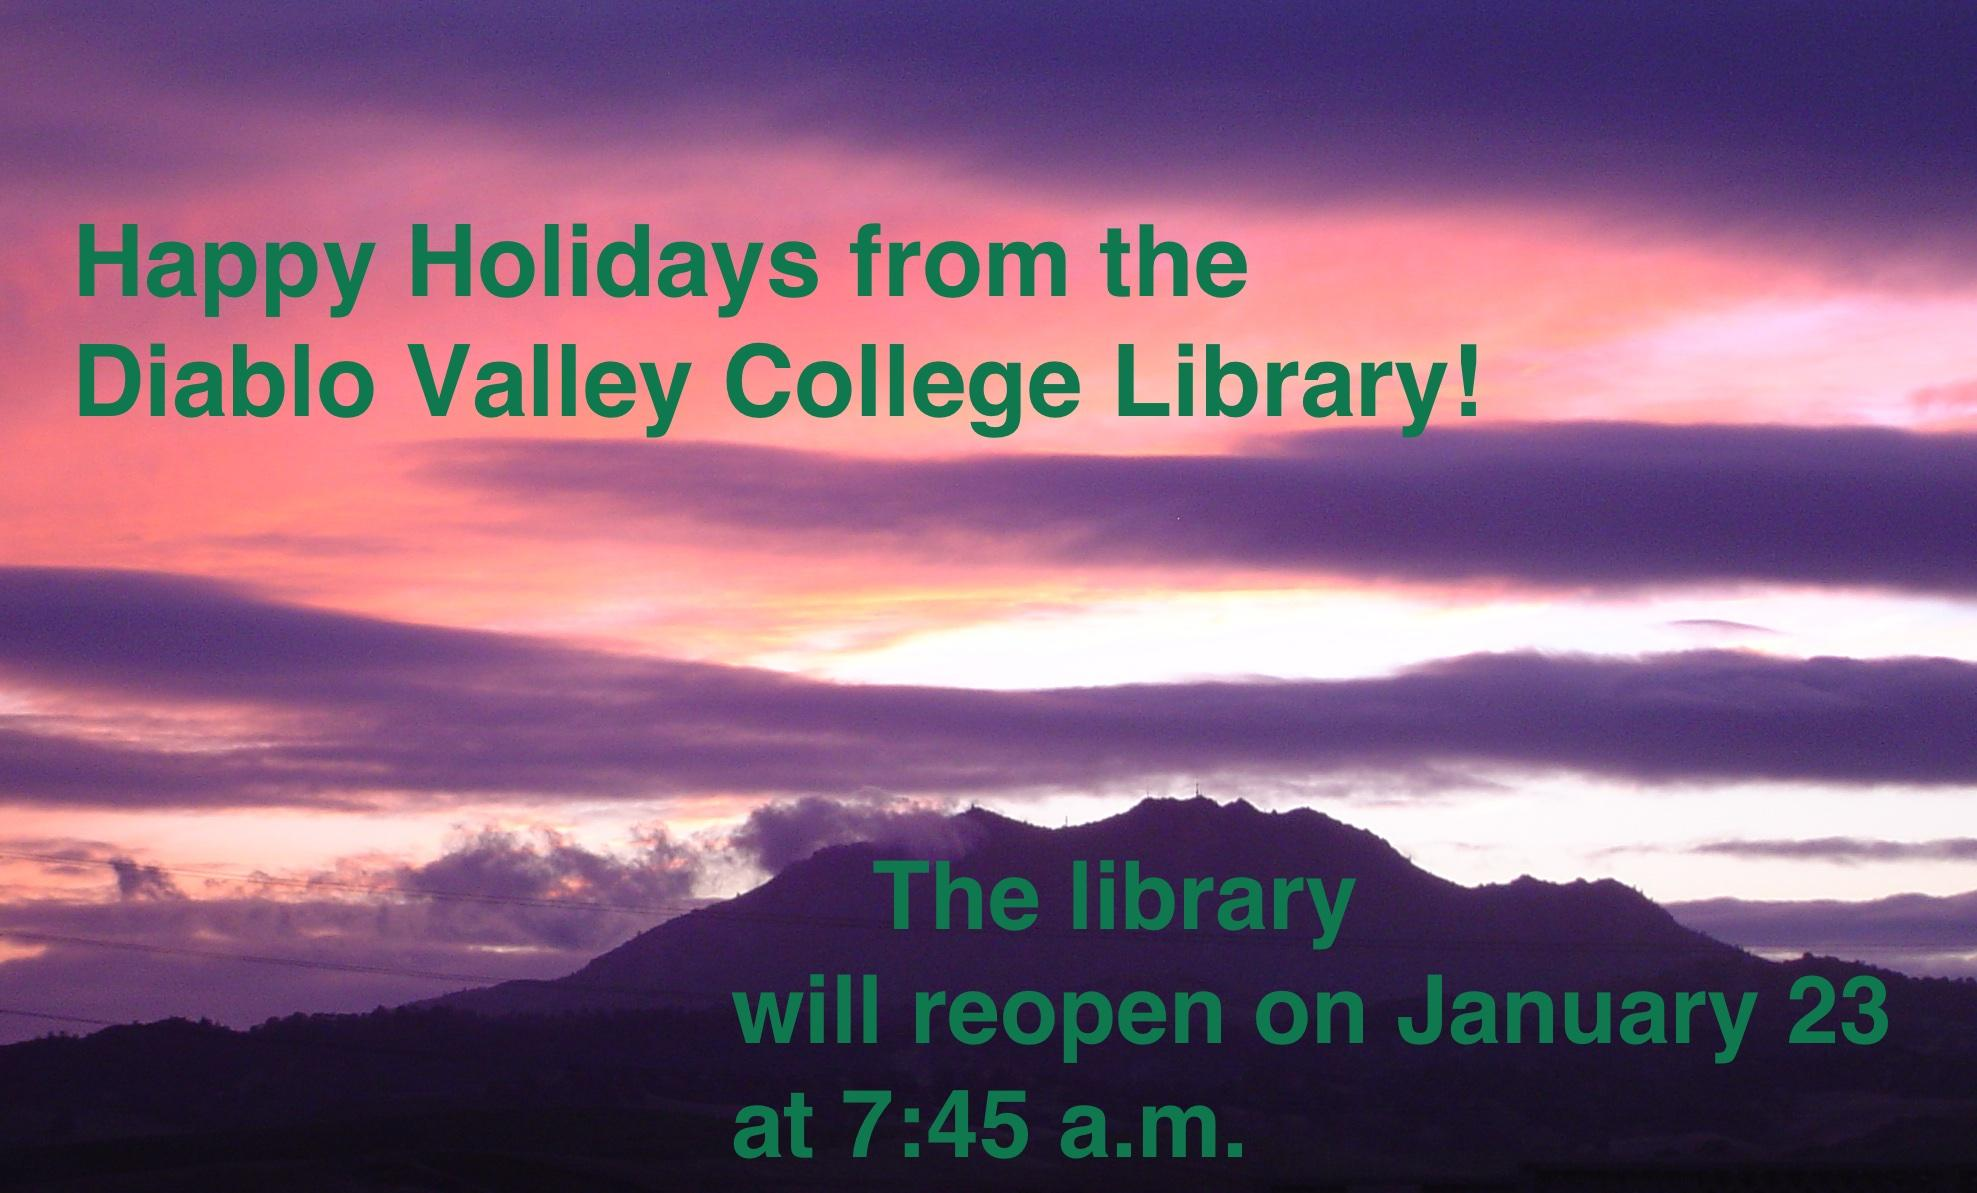 Happy Holidays from the DVC Library